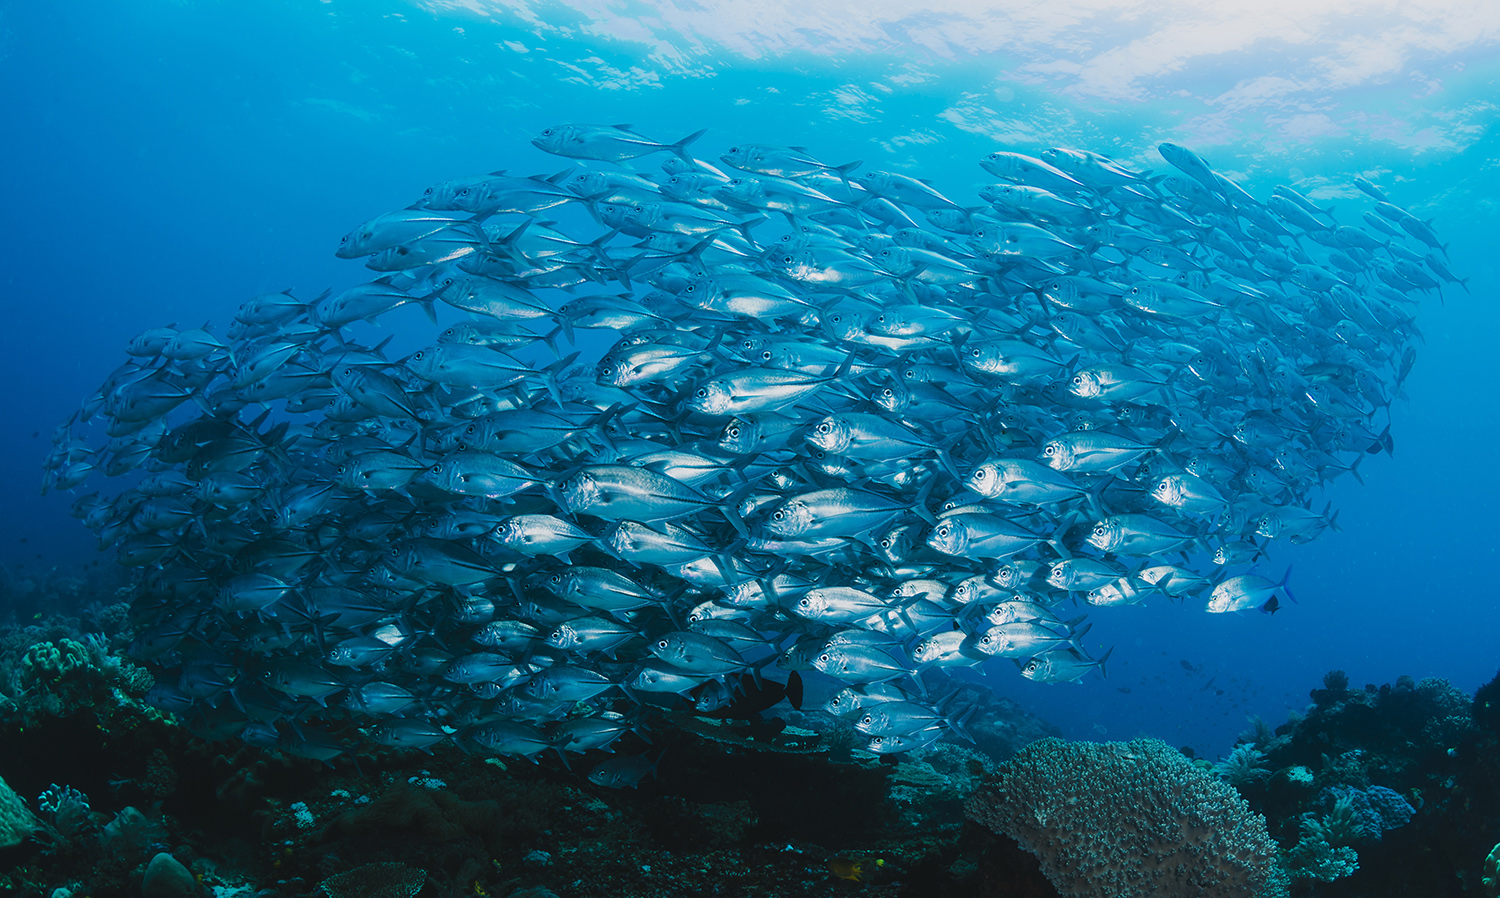 Micronesia President Orders Review Of Tuna Fishing Policies